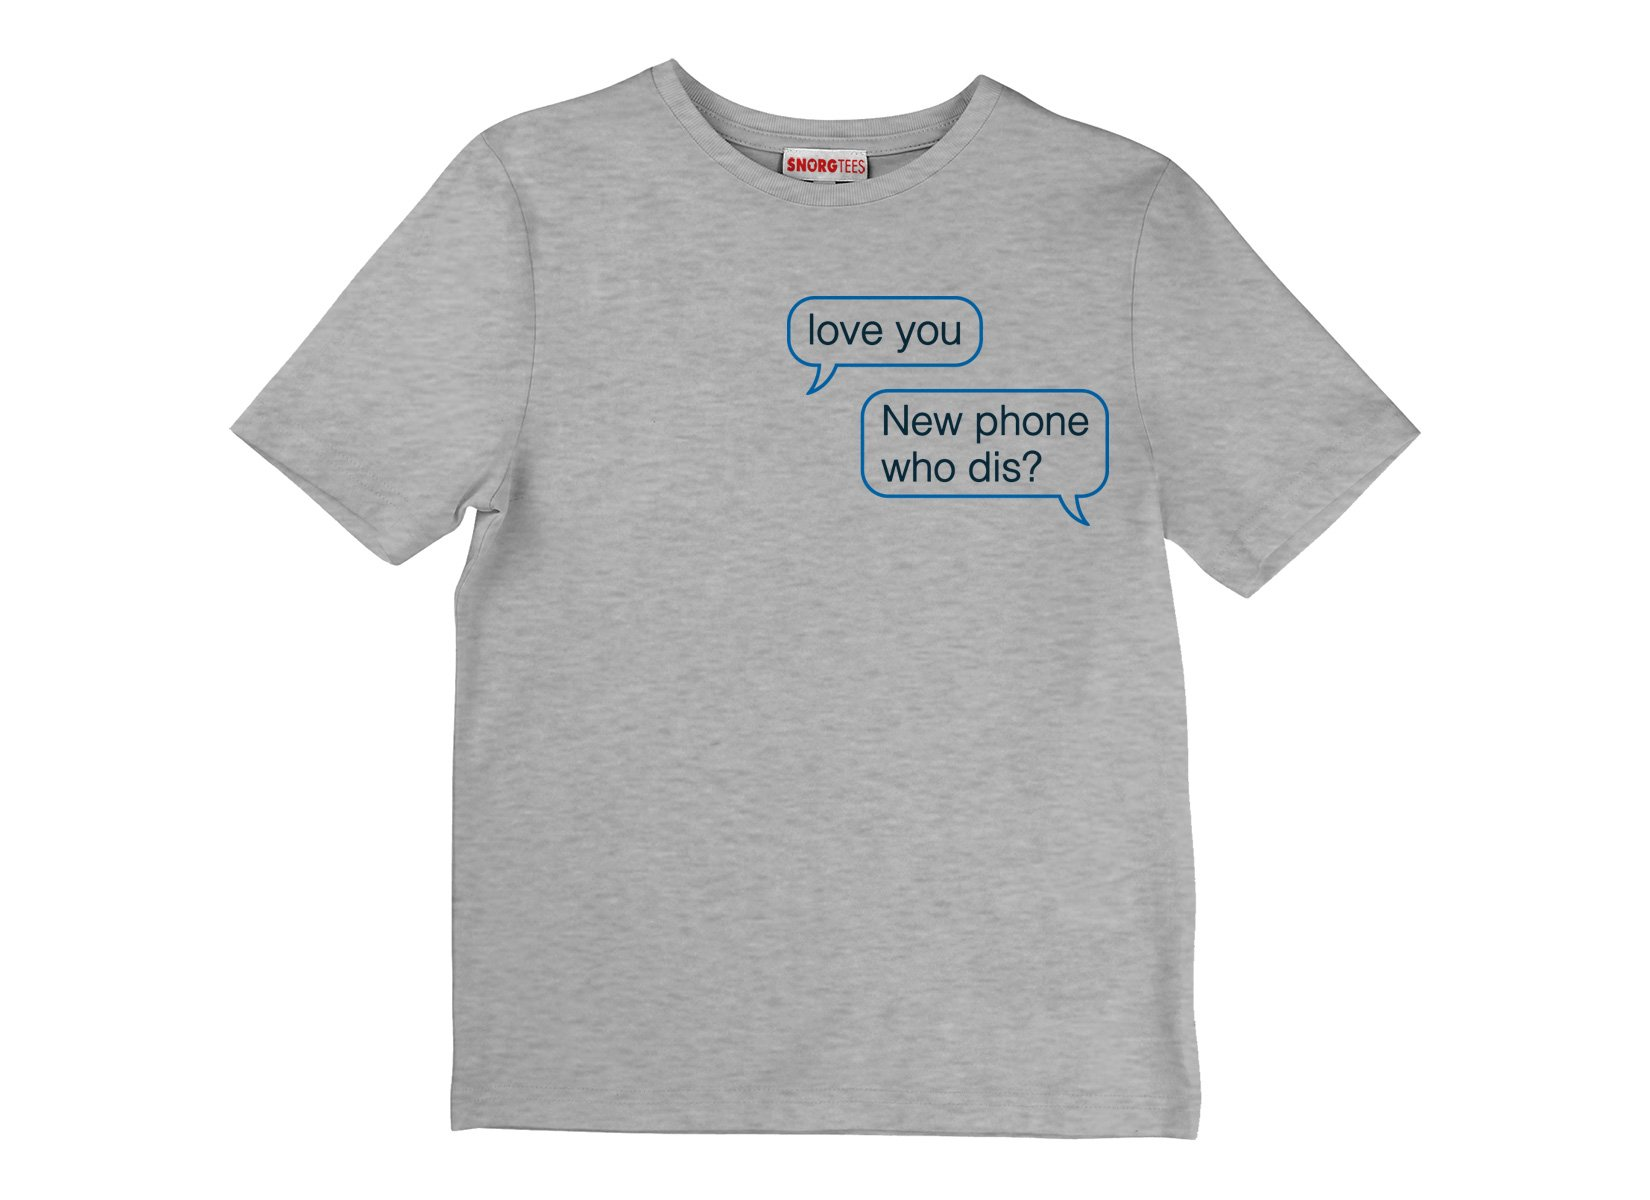 New Phone Who Dis? on Kids T-Shirt